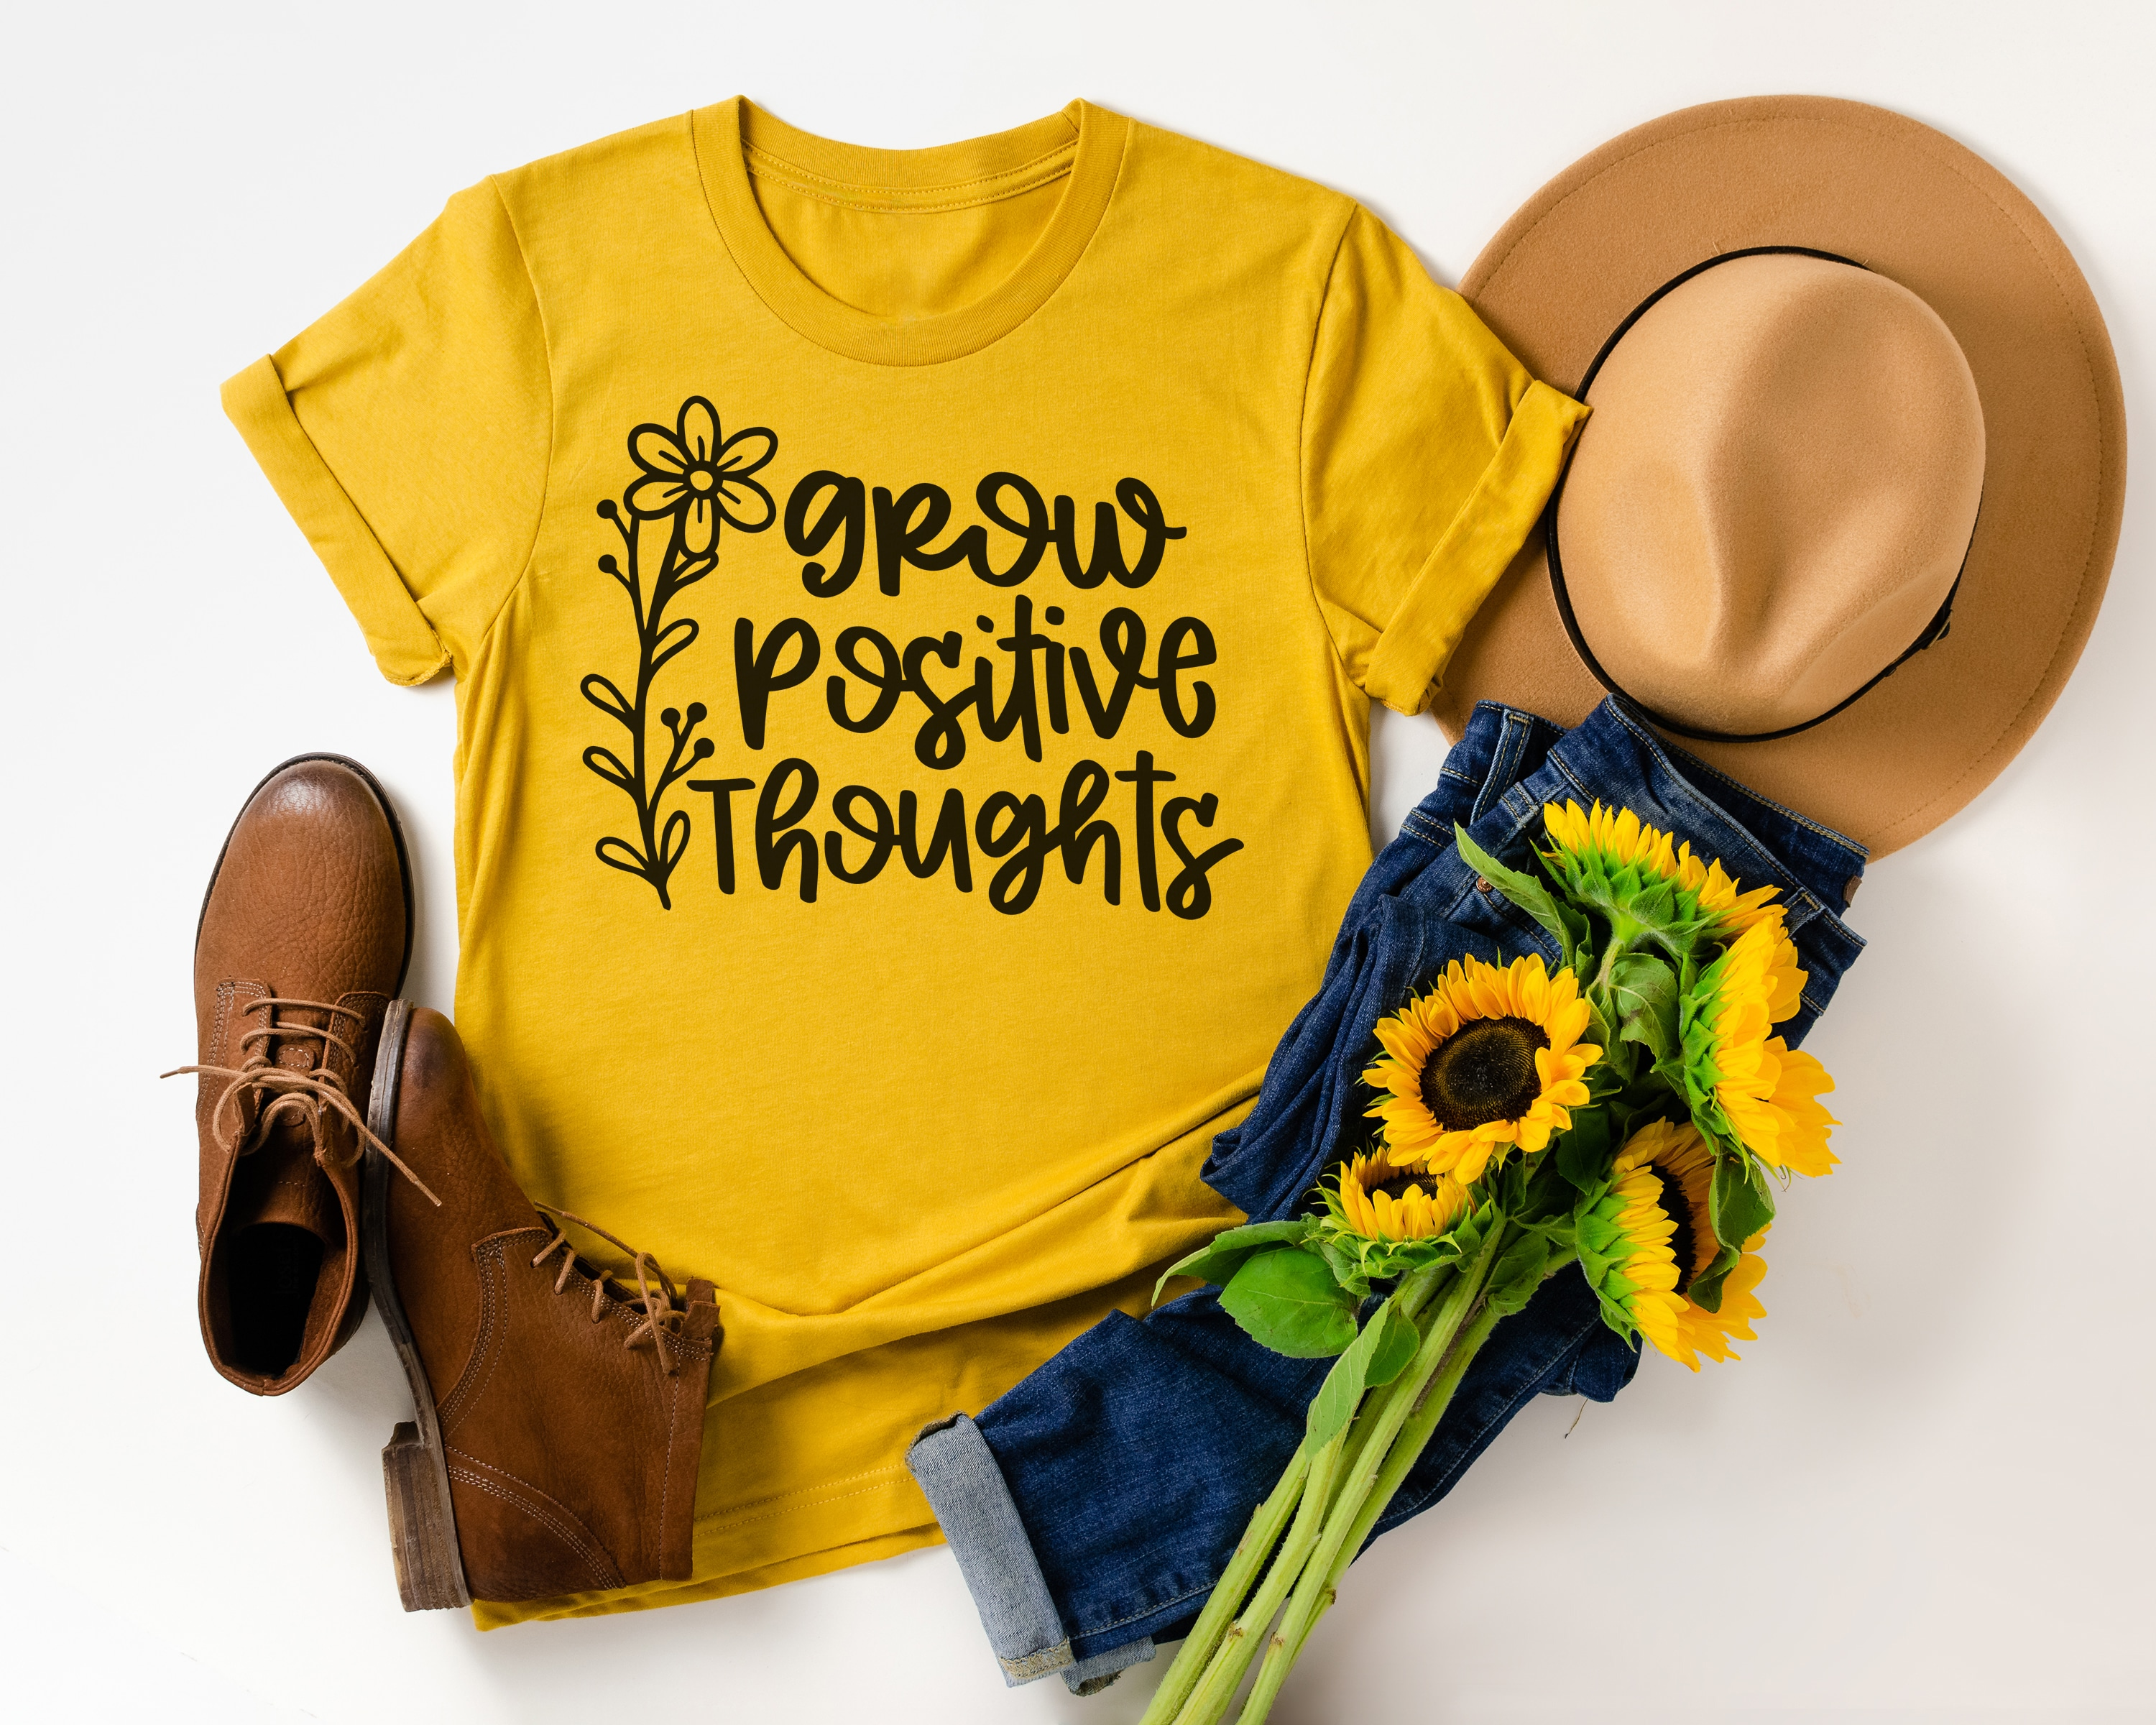 """Grow Positive Thoughts"" on mustard yellow shirt with styled outfit, hat, and sunflowers"